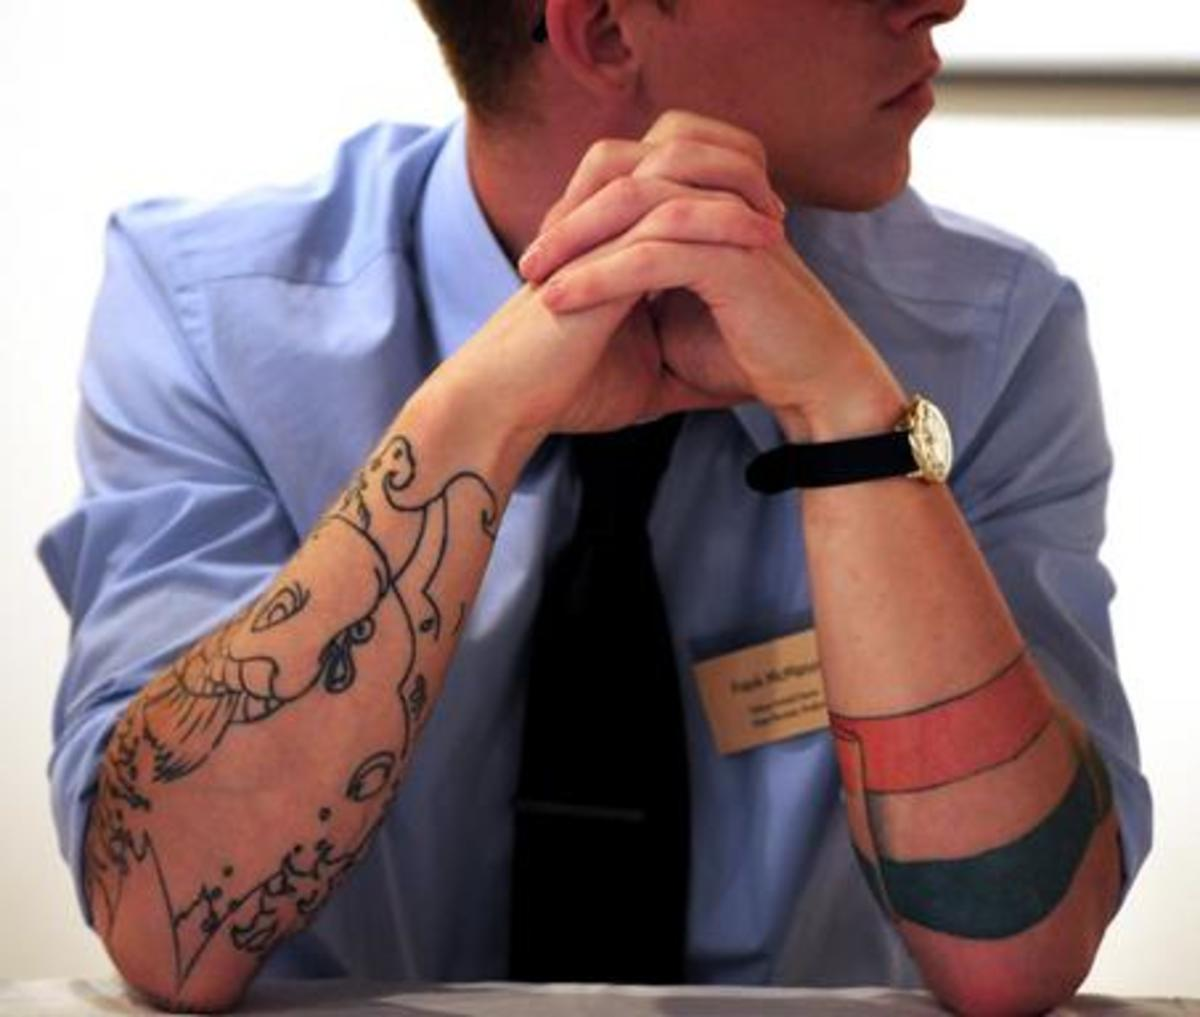 http://www.pennlive.com/midstate/index.ssf/2009/07/tattoos_in_the_workplace_no_lo.html